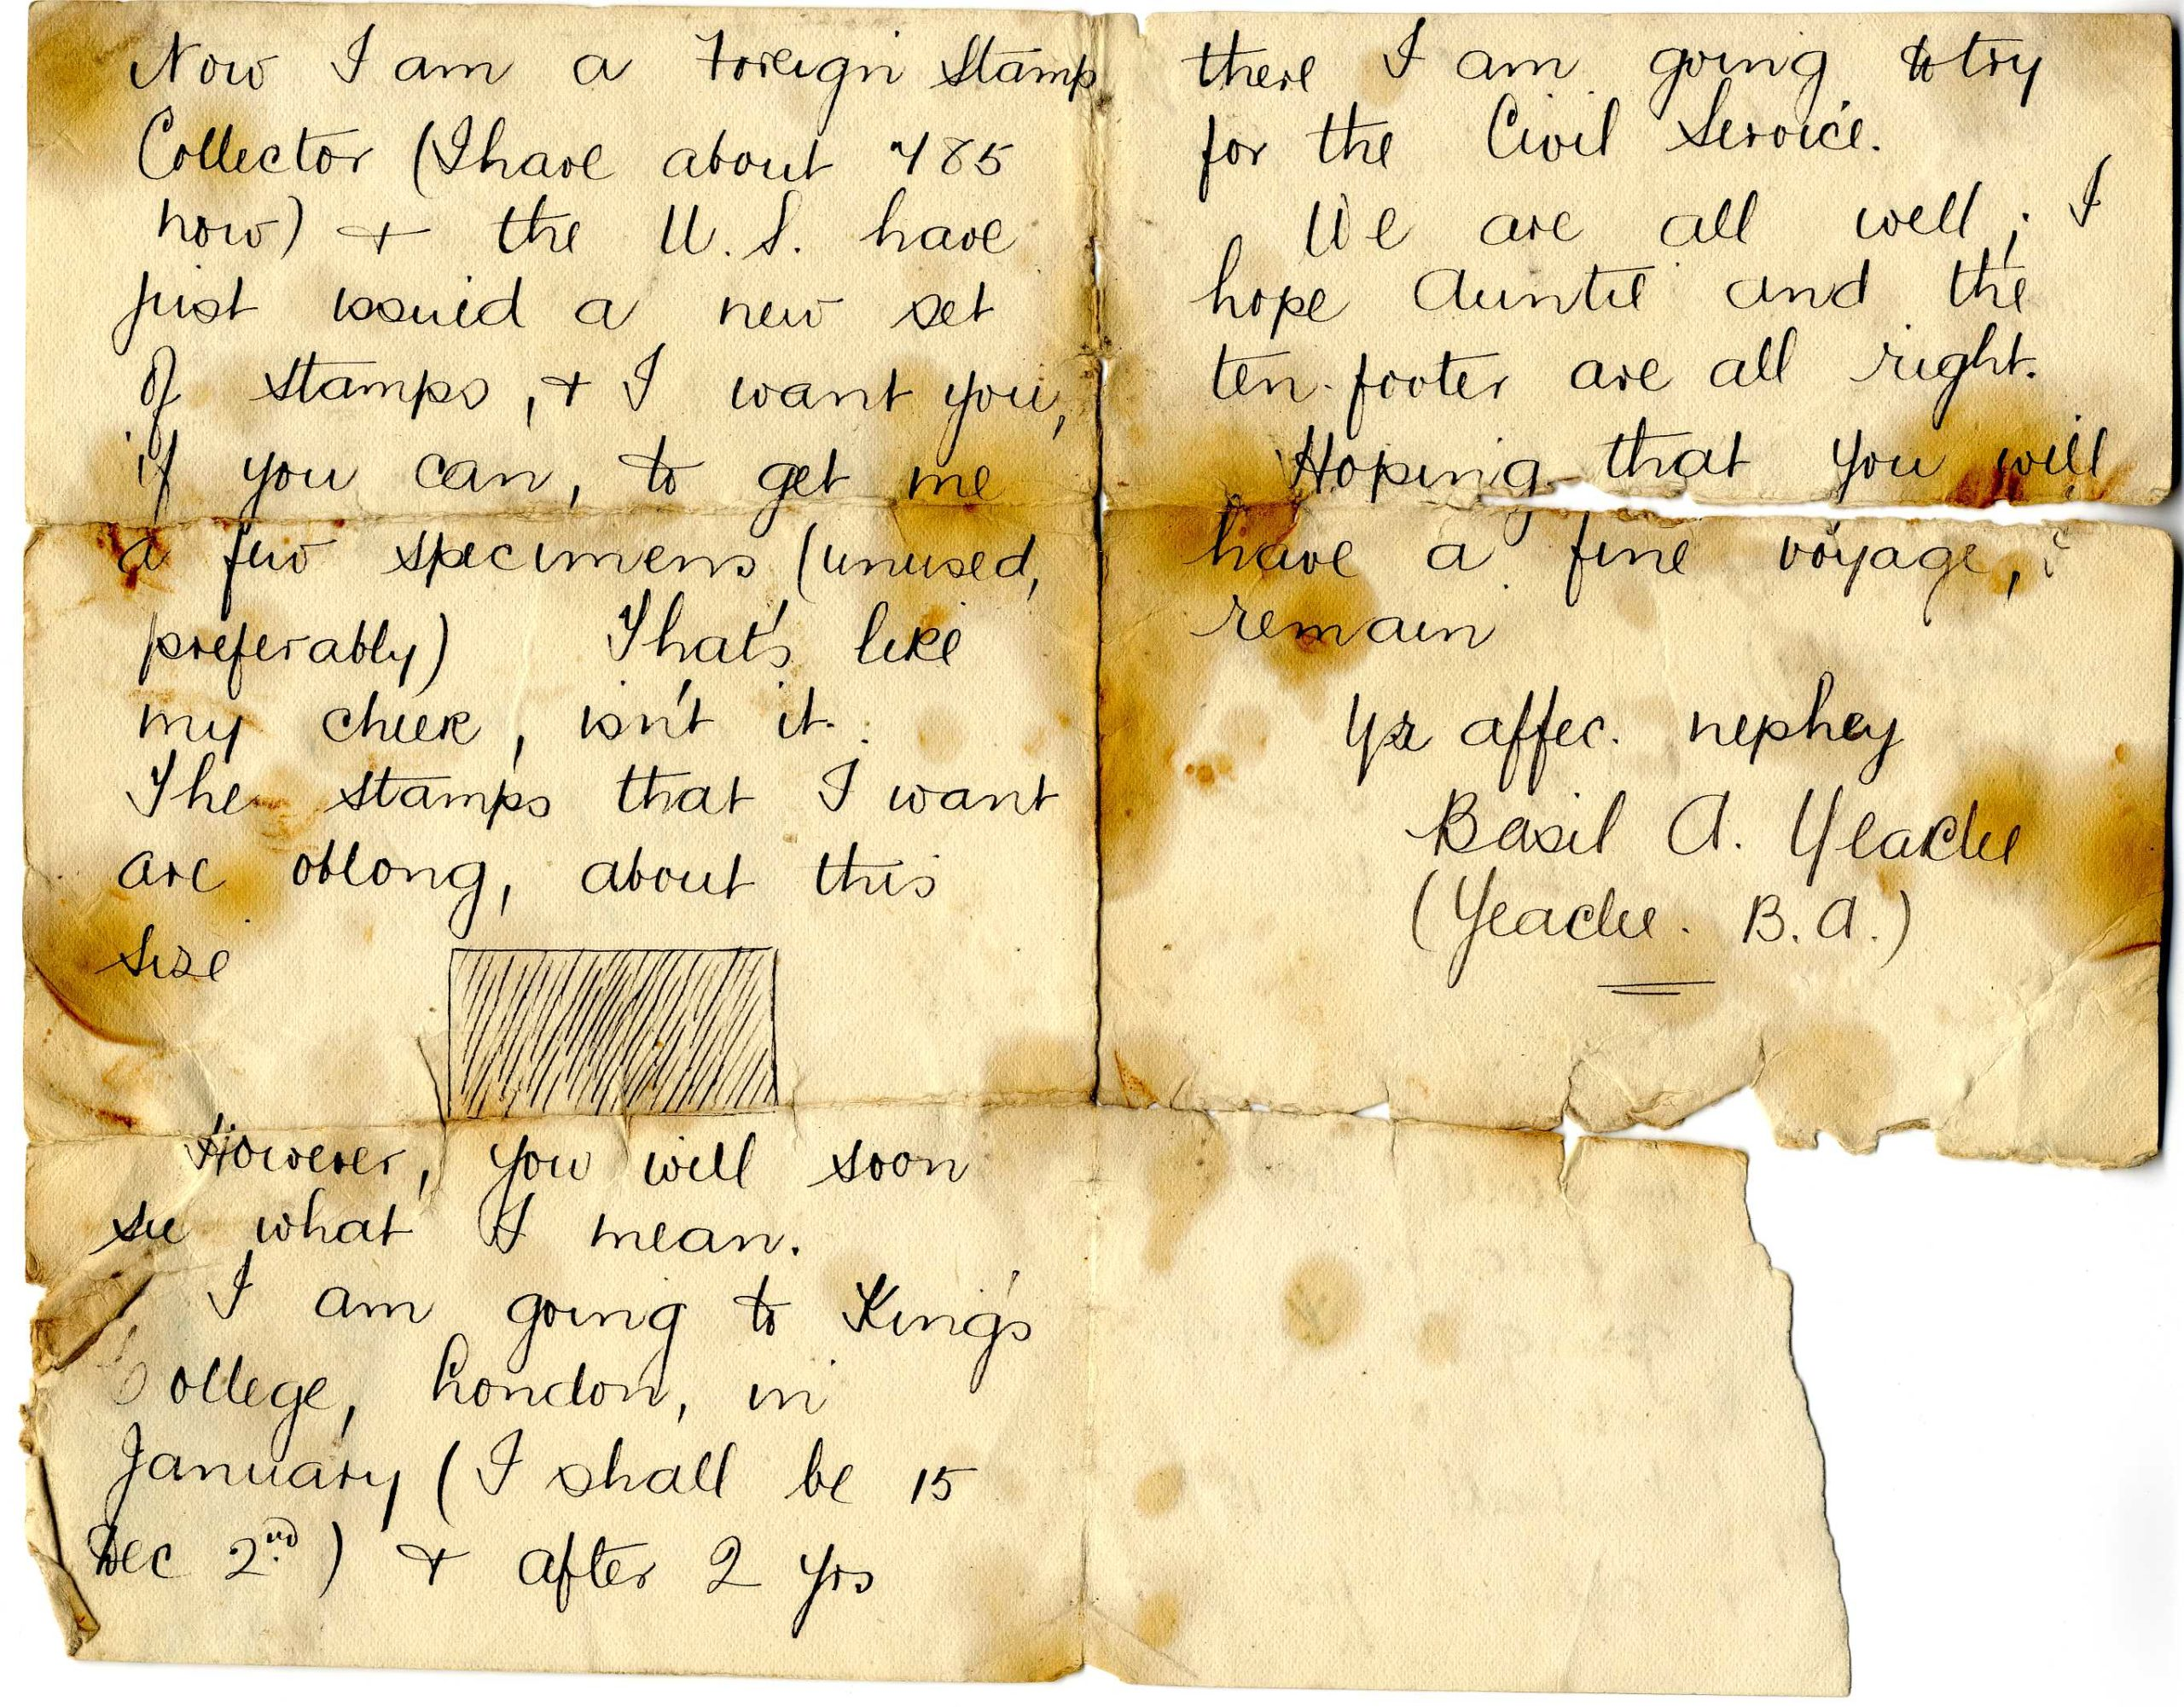 Scanned handwritten letter with water stains.